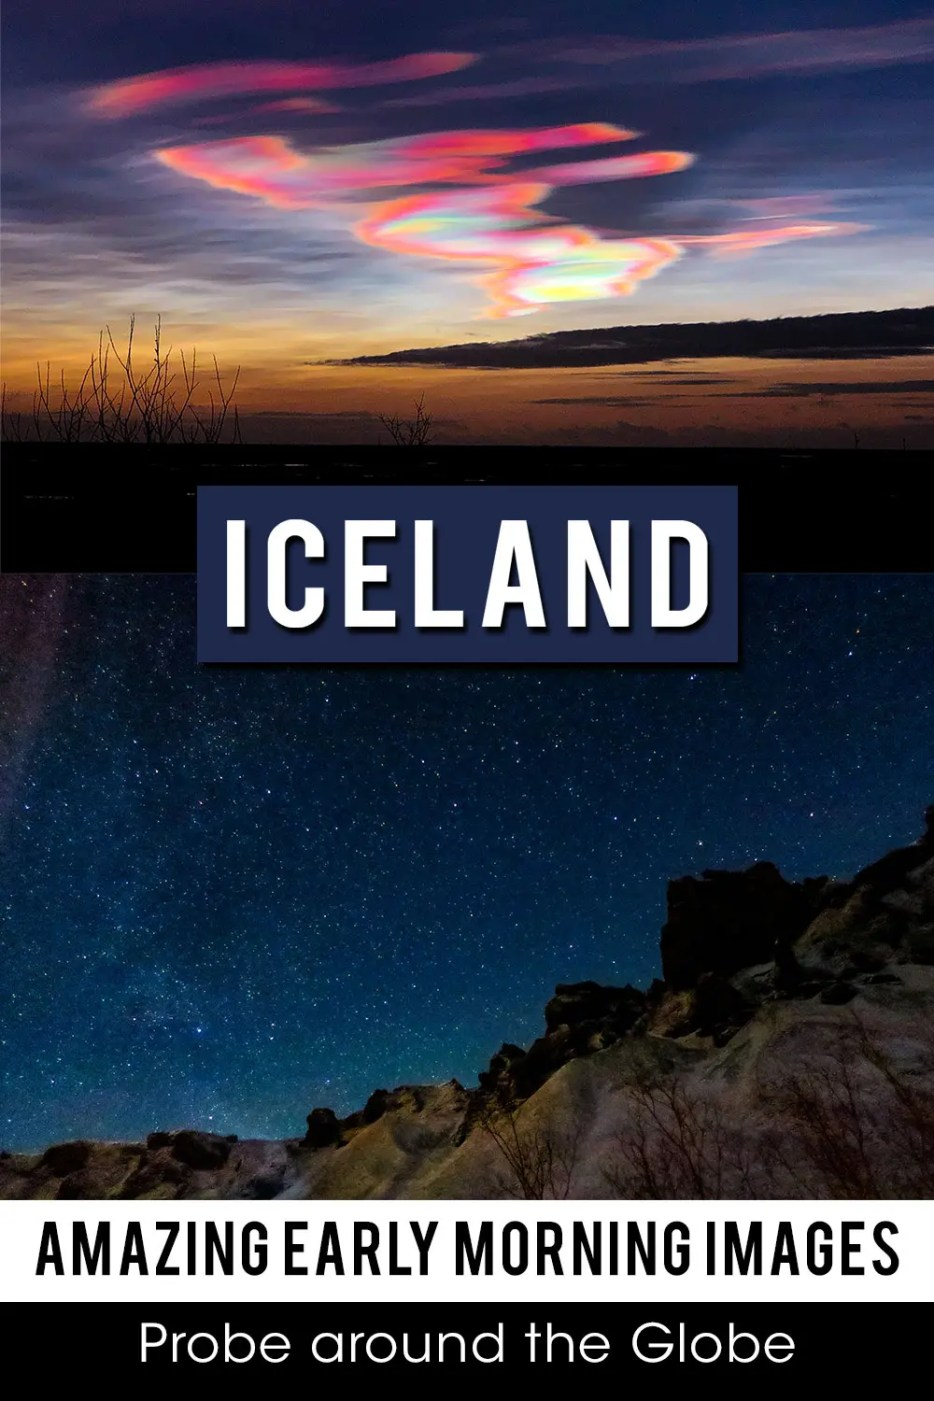 Vertical image with 2 photos. Top photo is a dark sky with circular clouds in rainbow colors. Second image is a rock formation with black and blue sky filled with stars. Text overlay saying: Iceland Amazing Early Morning Images Probe around the Globe